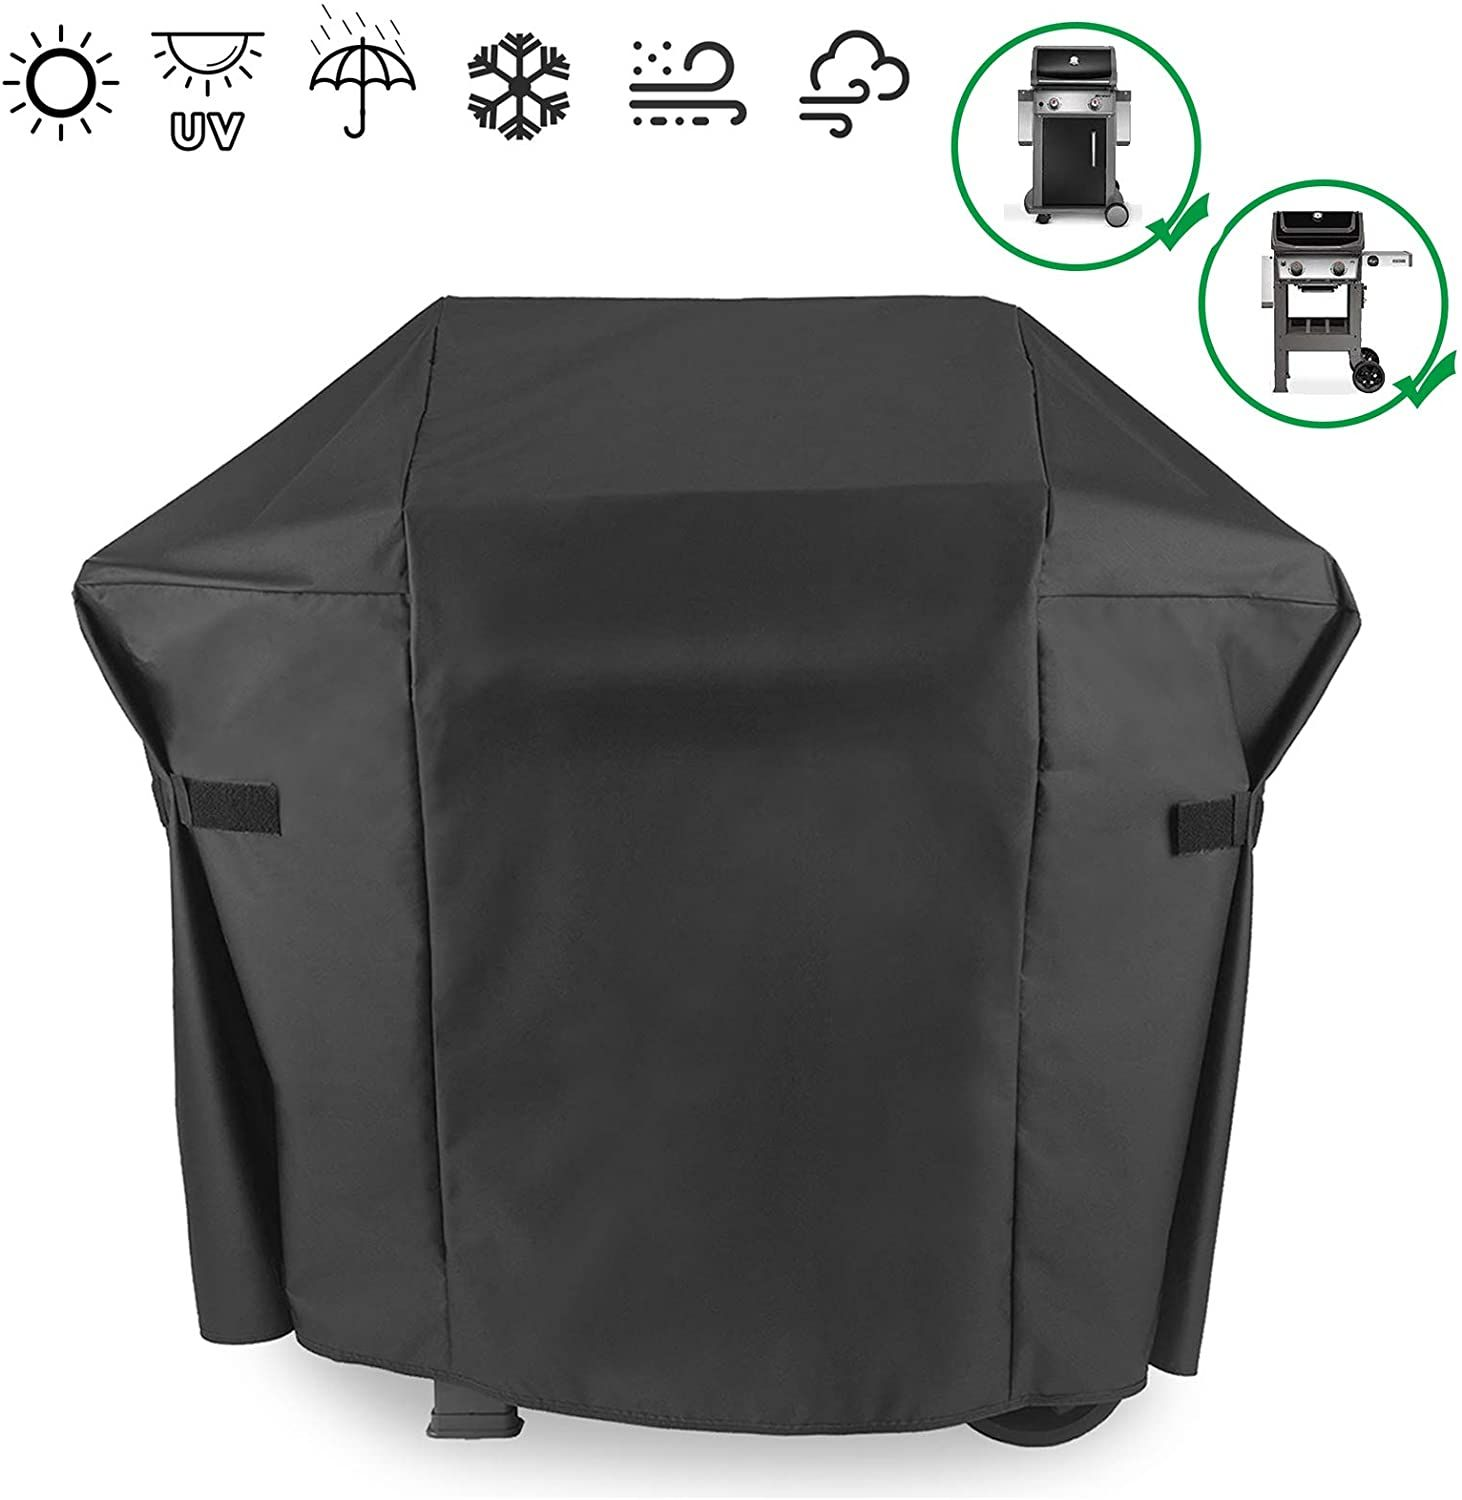 Acquire Early Reviews Hisencn 7138 Premium Grill Cover For Weber Spirit Ii E200 E210 Series Spirit 200 210 Series 2 Burner Gas Gril